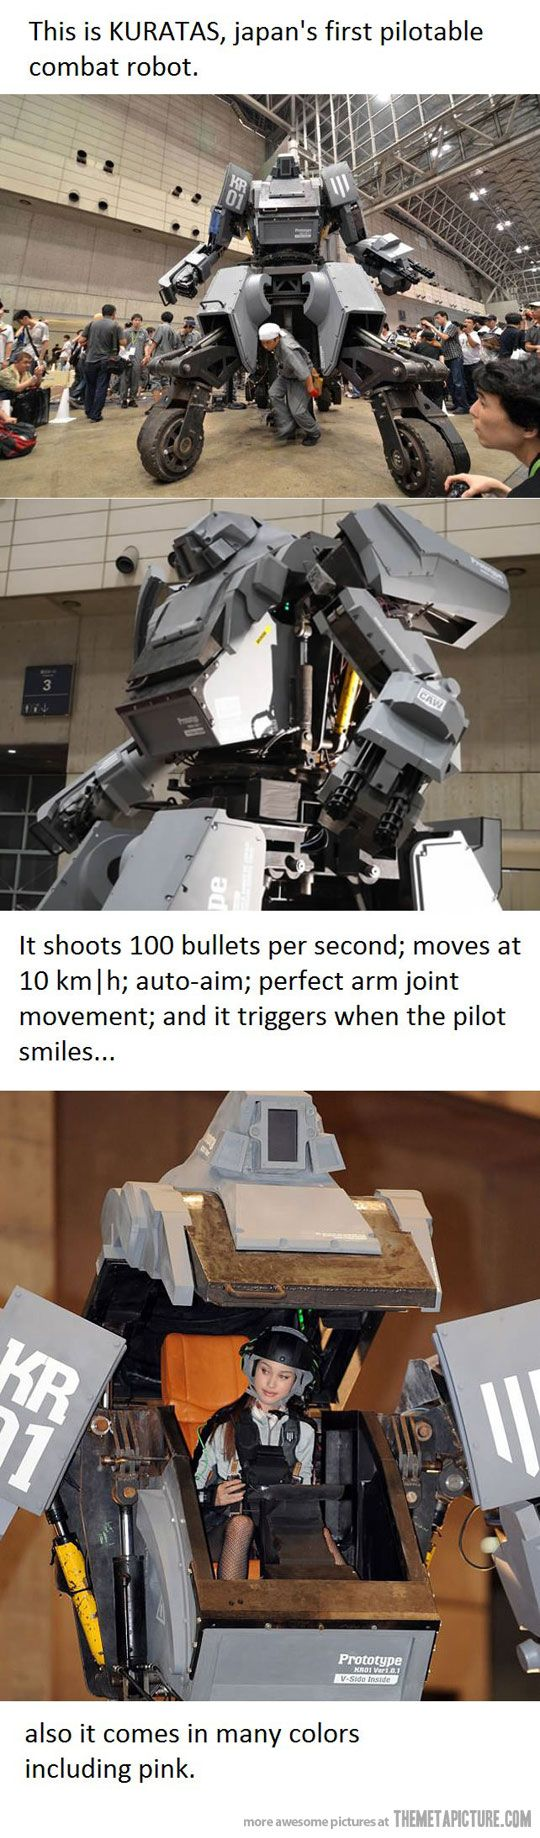 Japan's first combat robot…   I knew this day was coming! Run